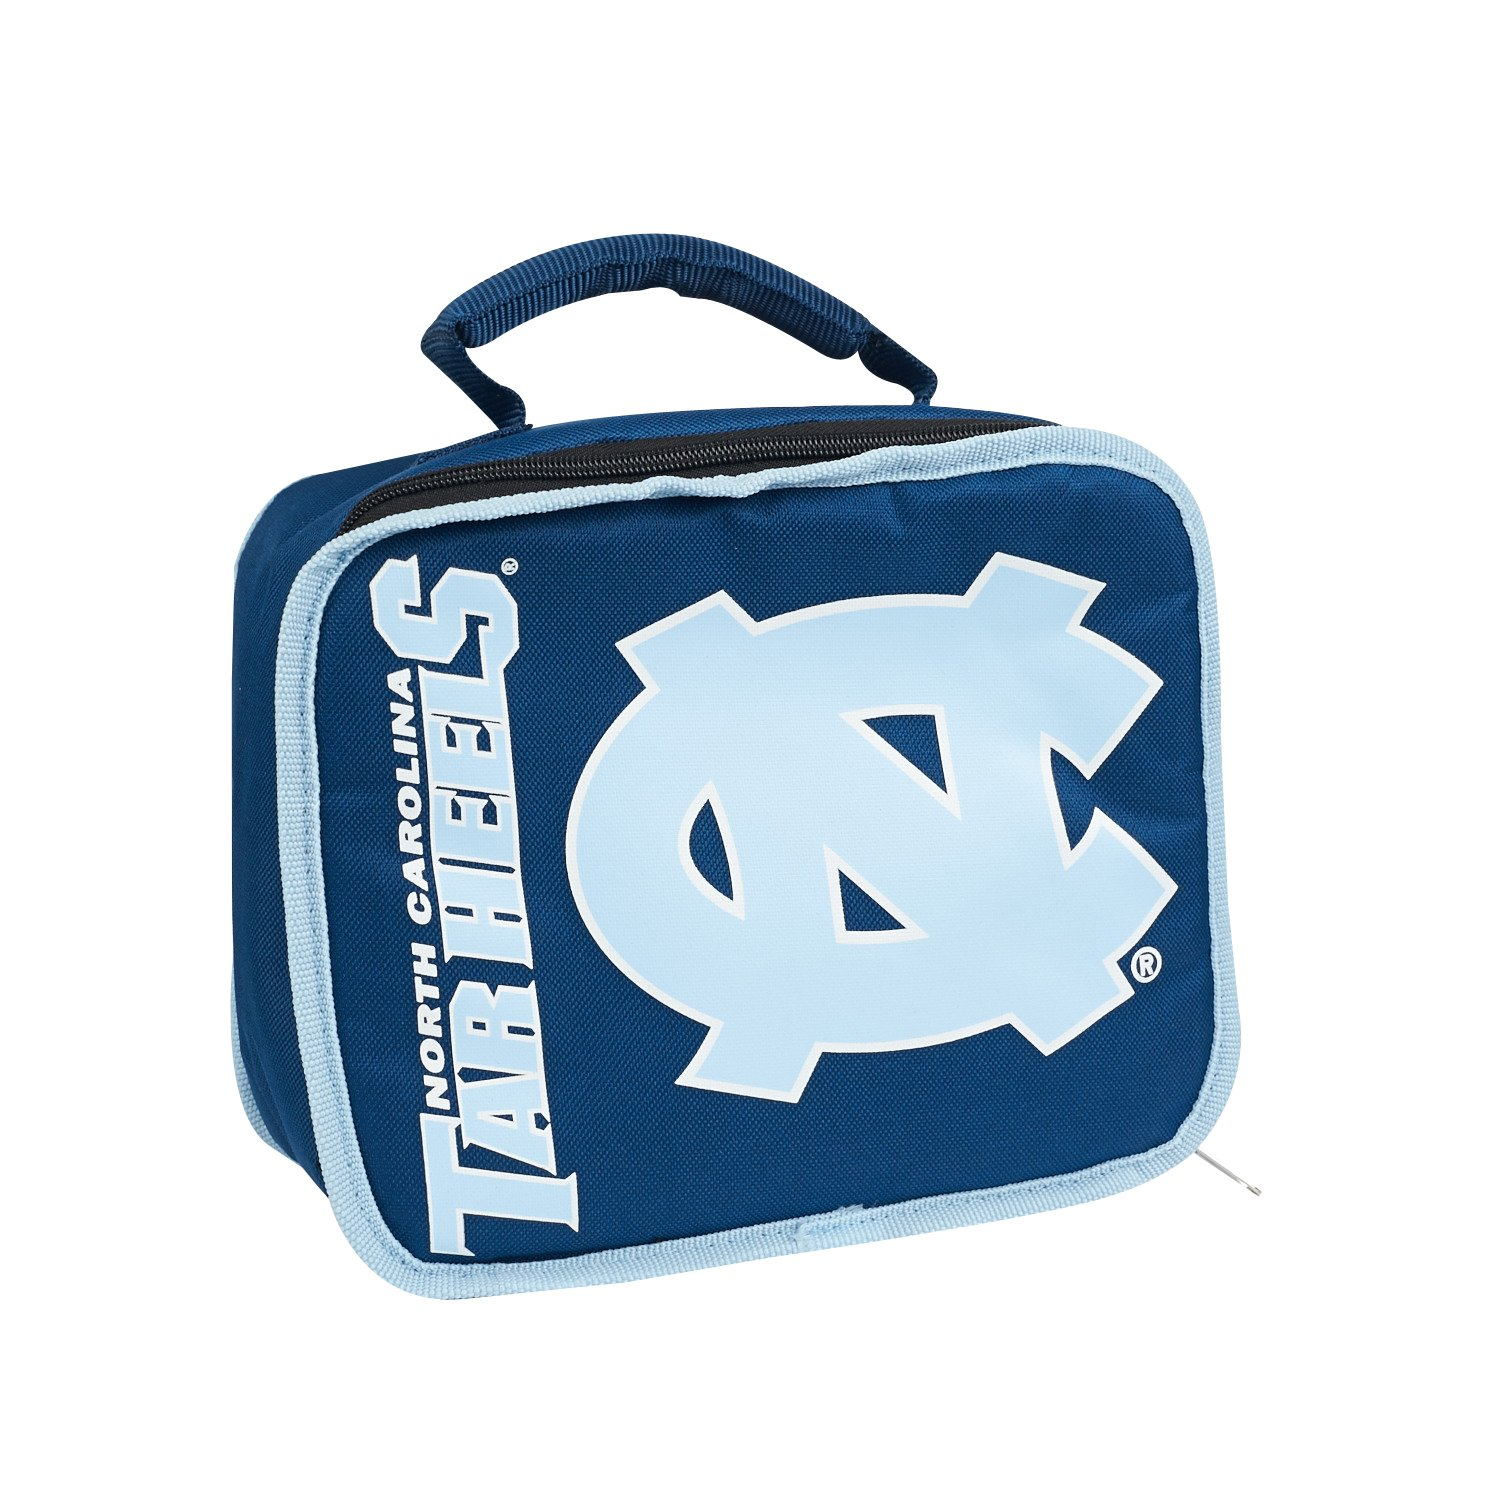 Officially Licensed NCAA North Carolina Tar Heels Sacked Lunch Cooler